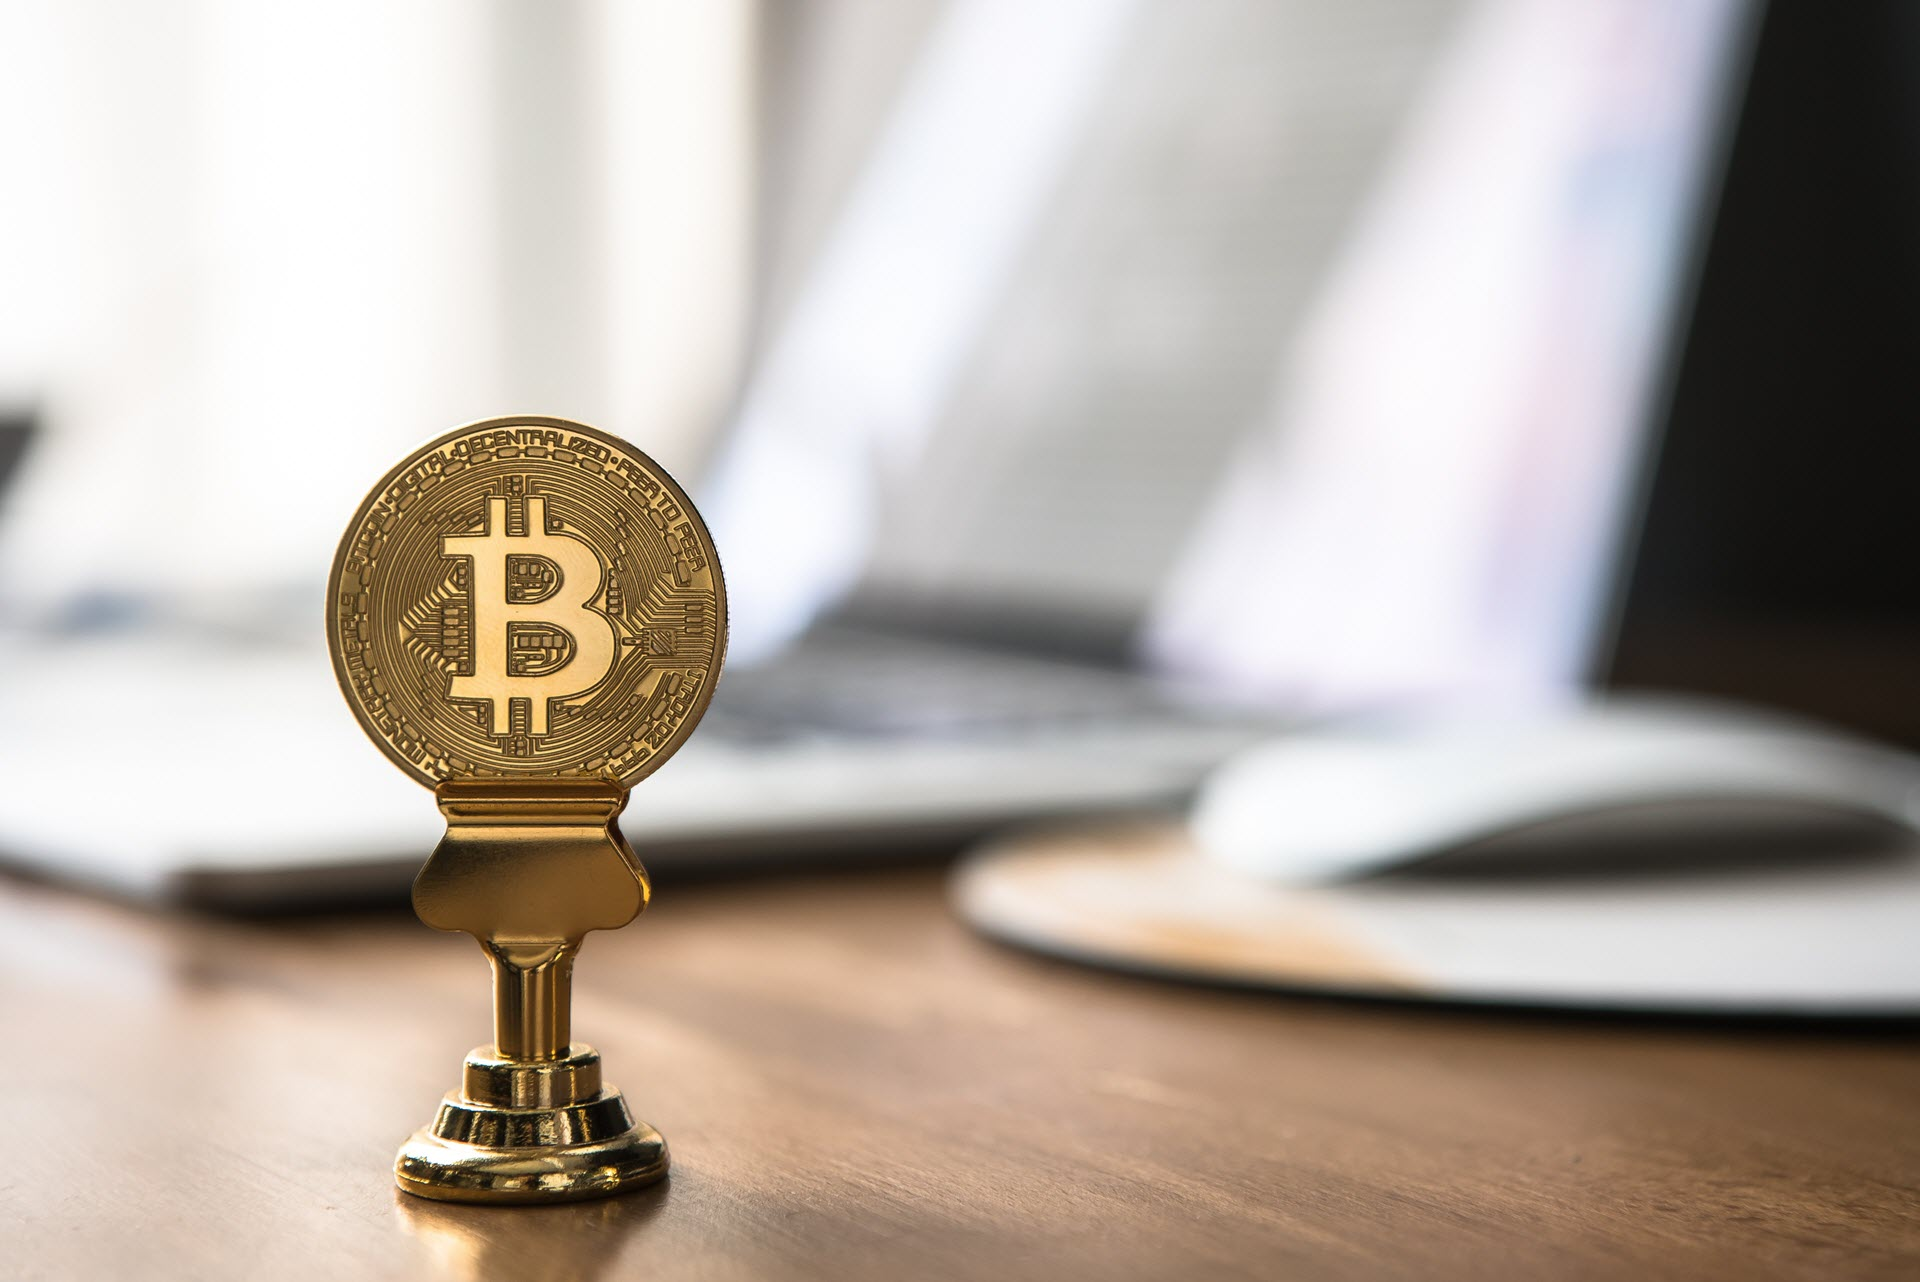 3 major security issues with Cryptocurrency